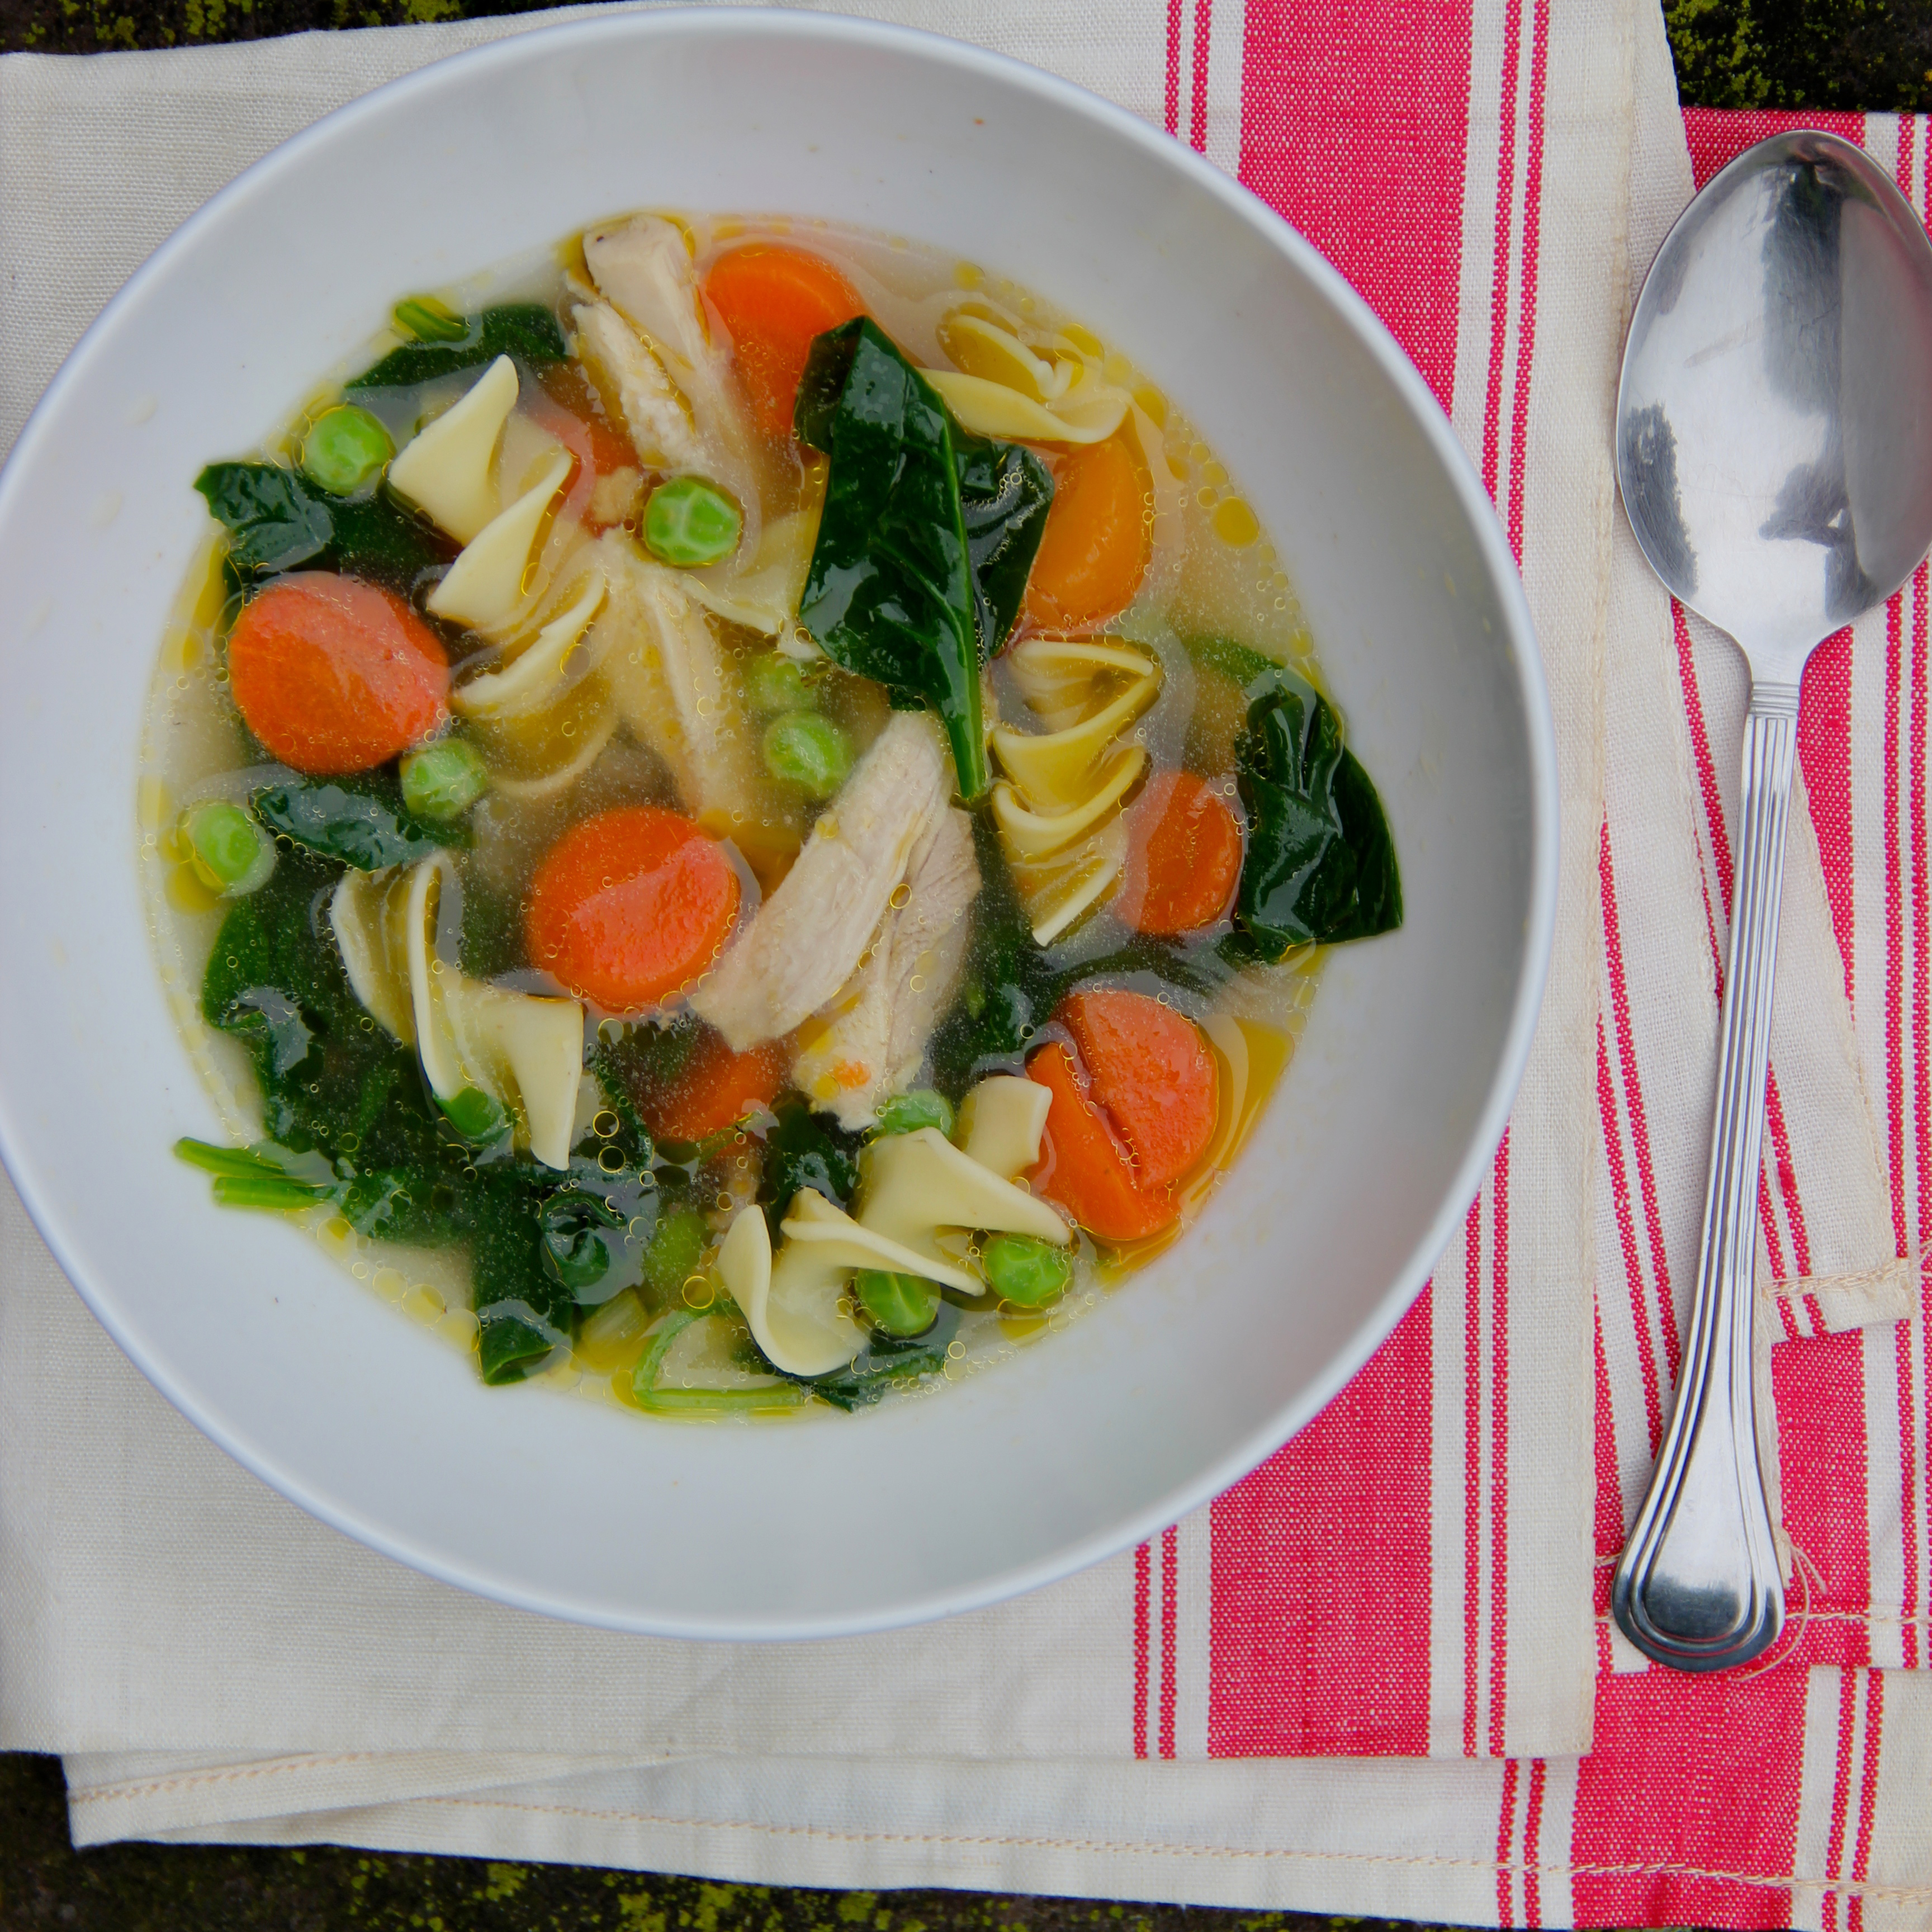 Chicken and vegetable noodle soup recipe ian knauer for What vegetables to put in chicken noodle soup